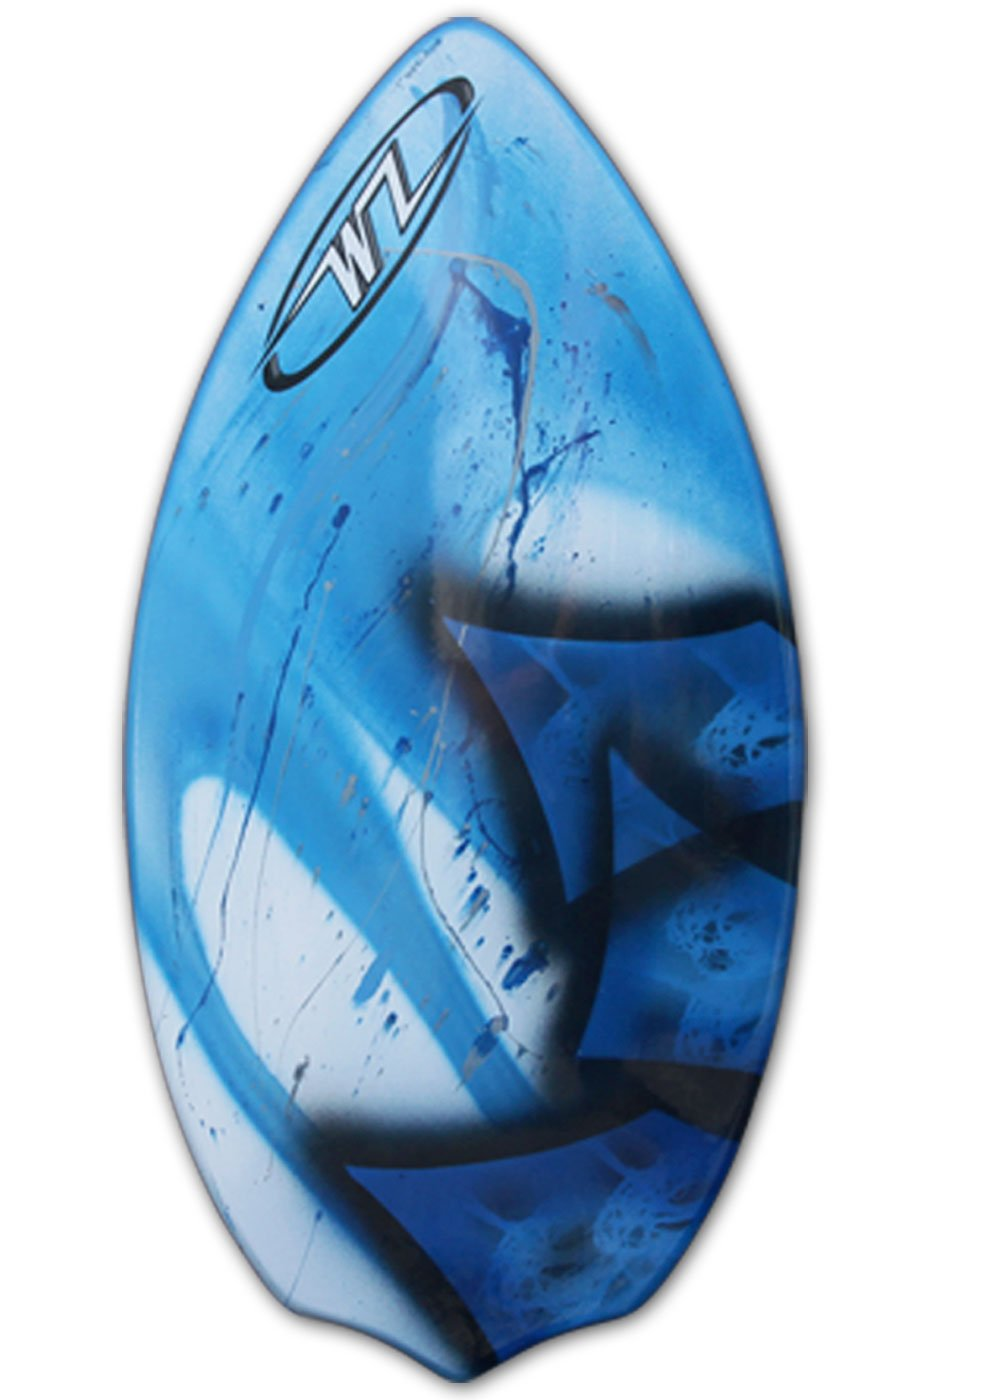 Wave Zone Diamond - Fiberglass Skimboard for Beginners - Blue